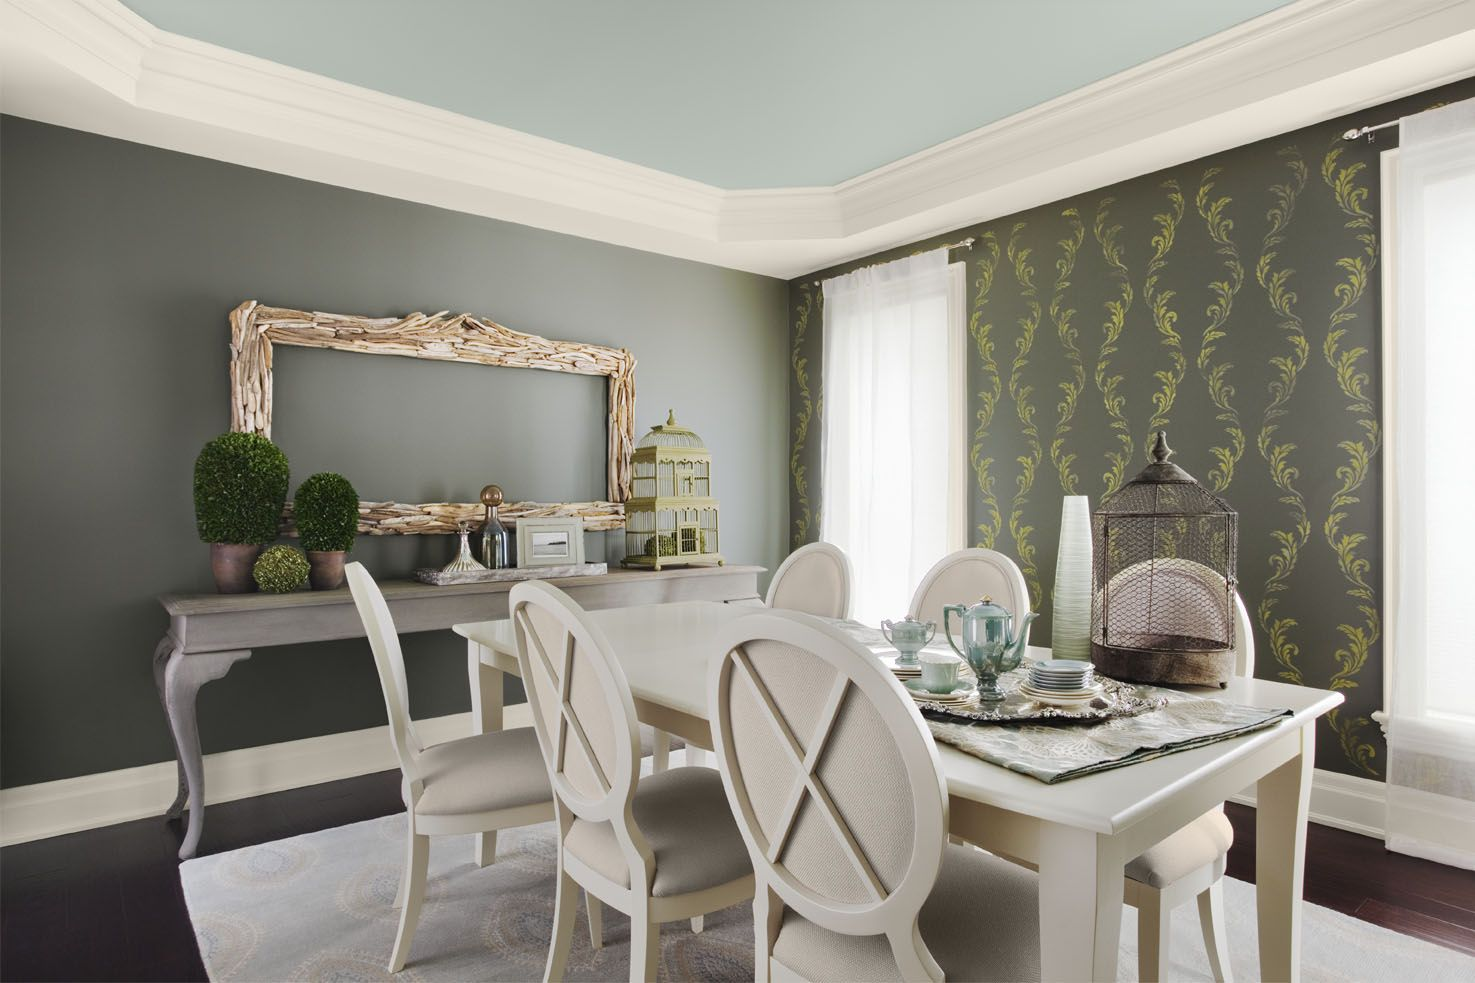 404 Error Benjamin Moore Dining Room Colors Dining Room Colour Schemes Home